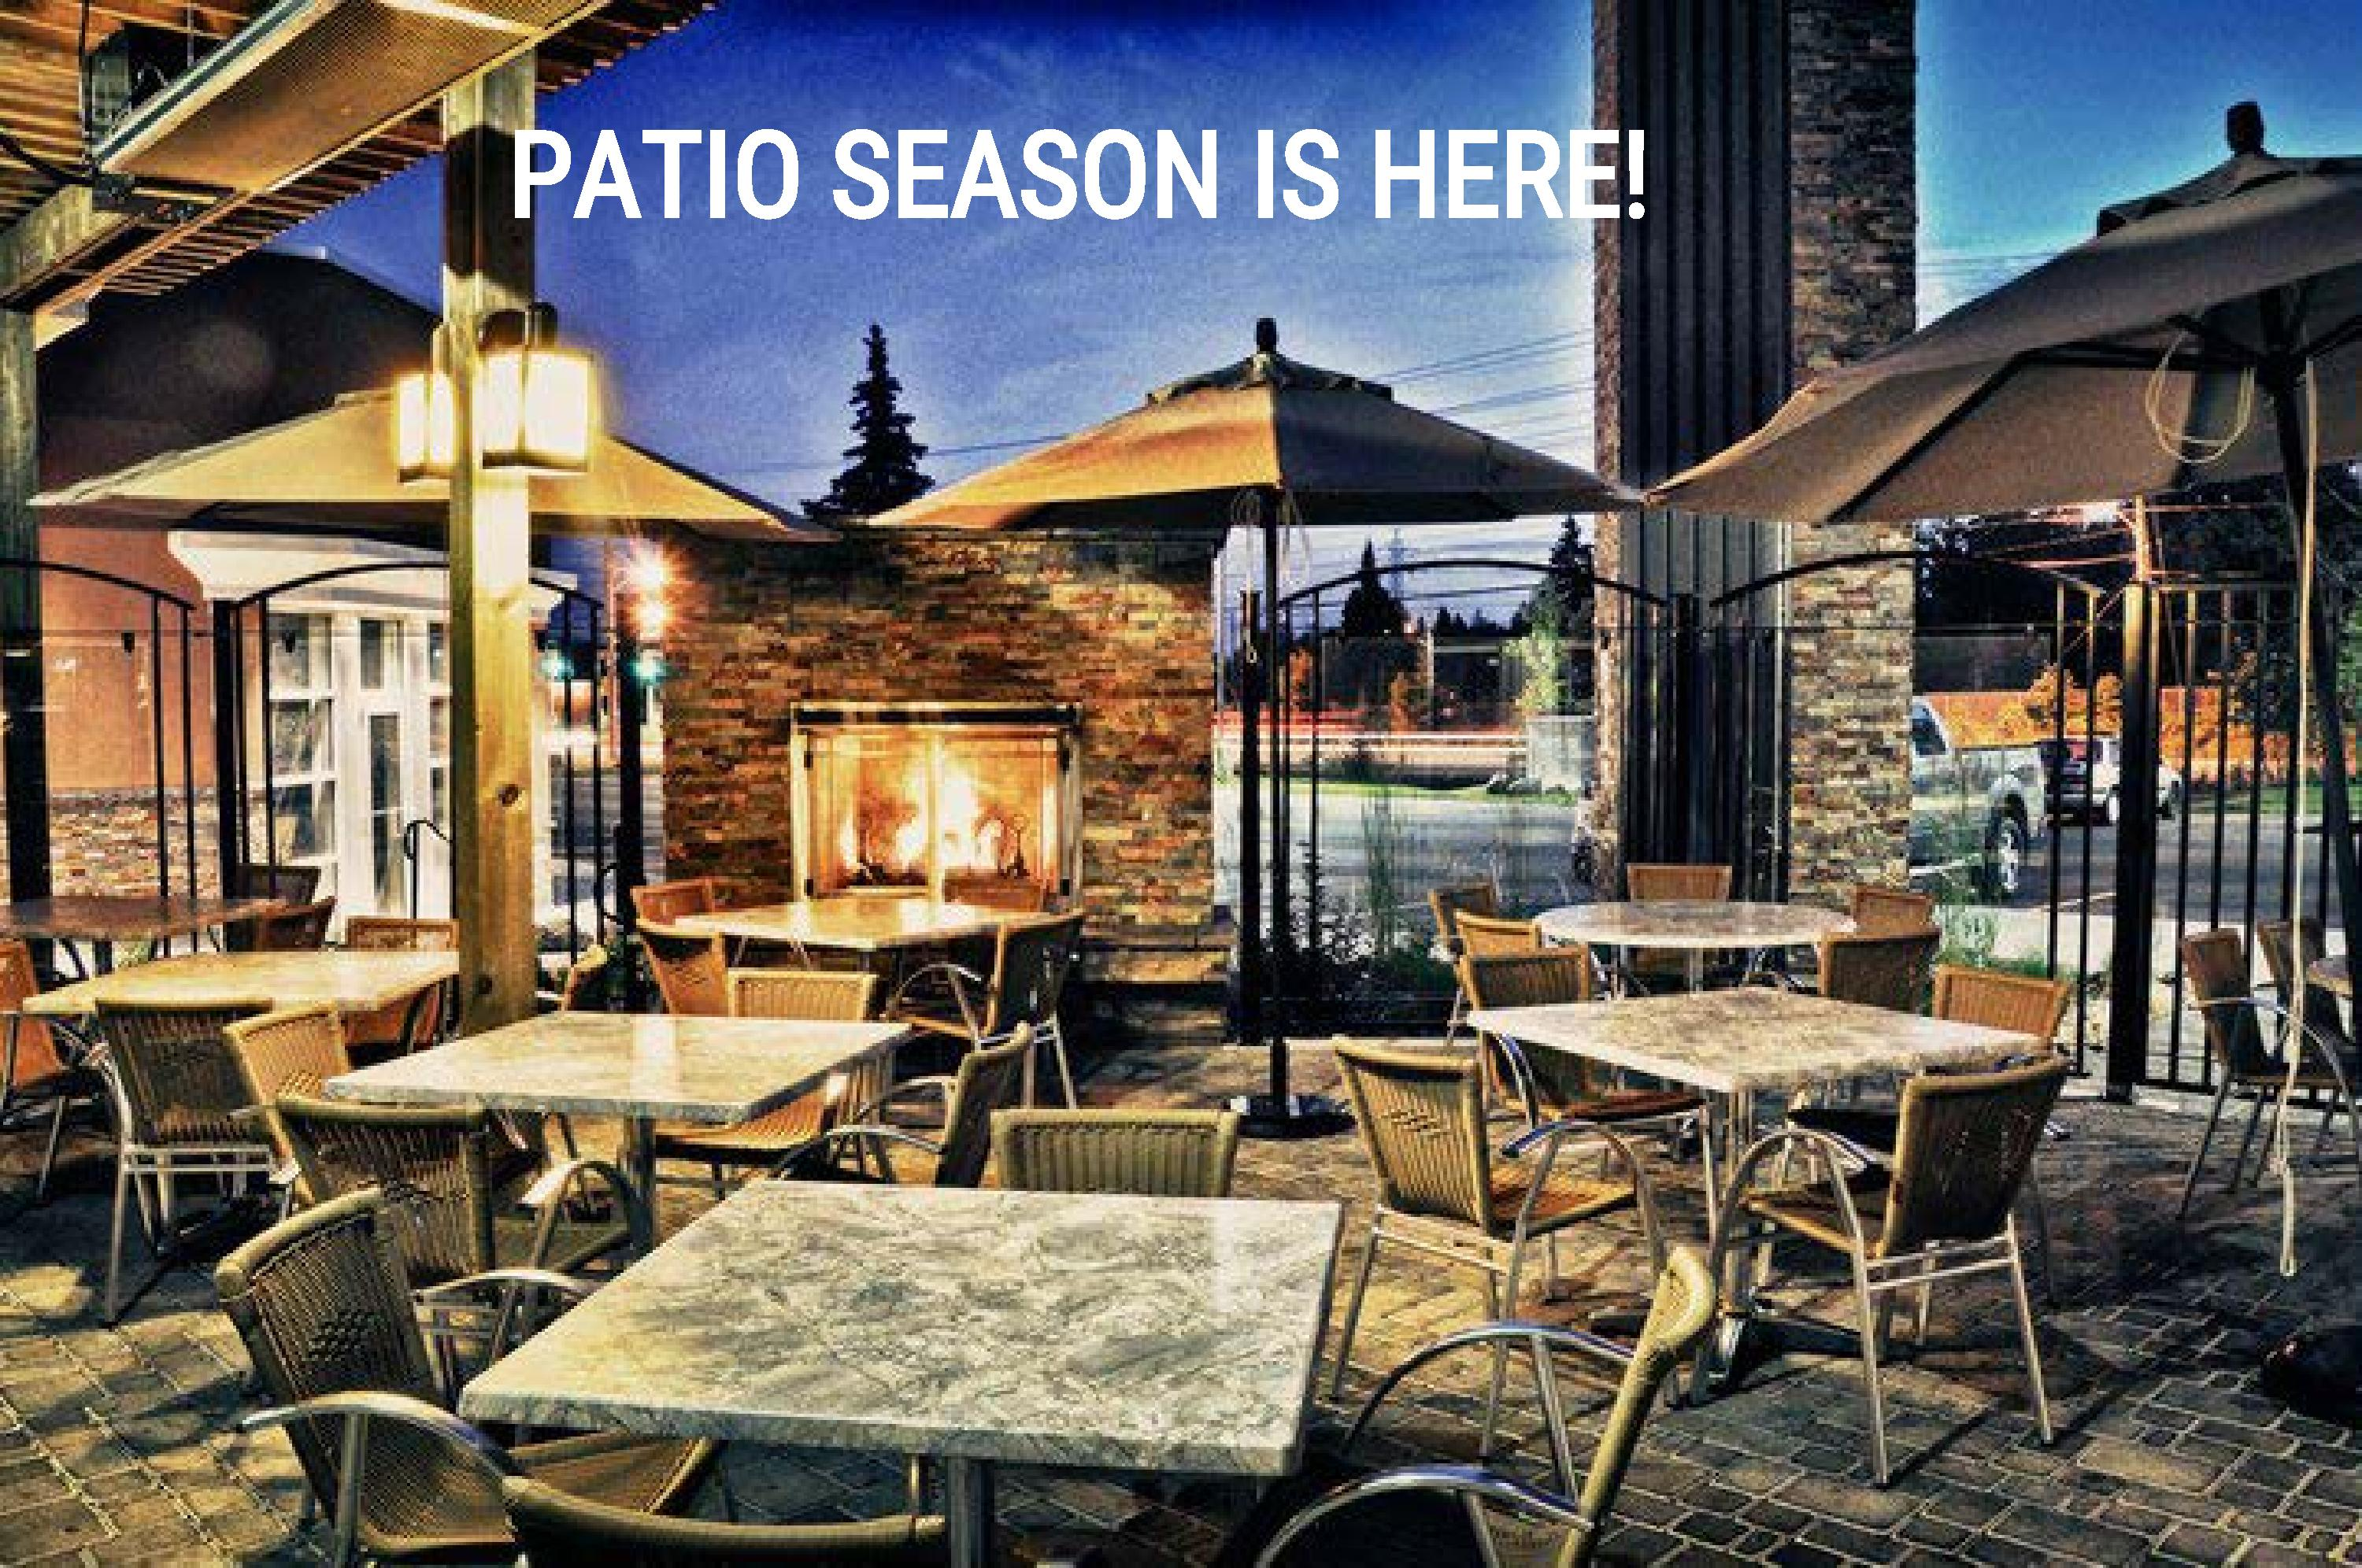 PATIO-SEASON-page-001